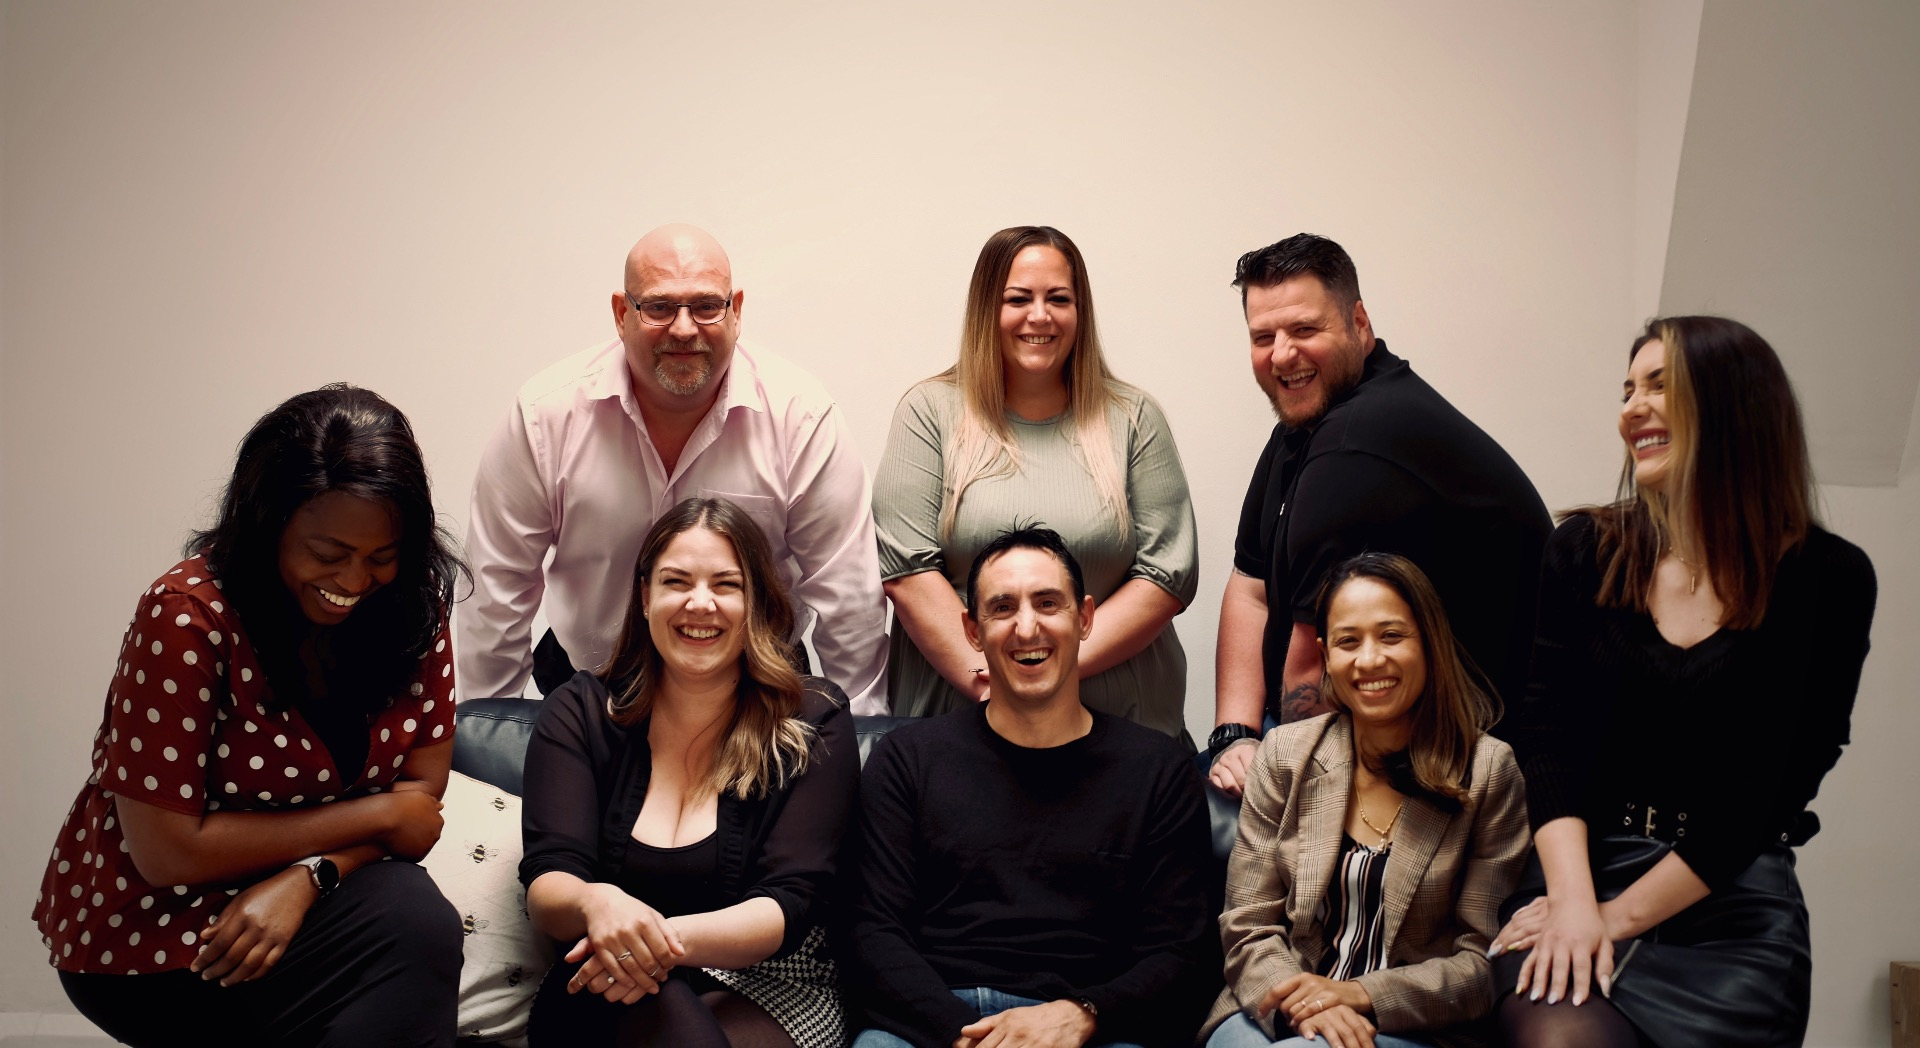 Beehive team picture